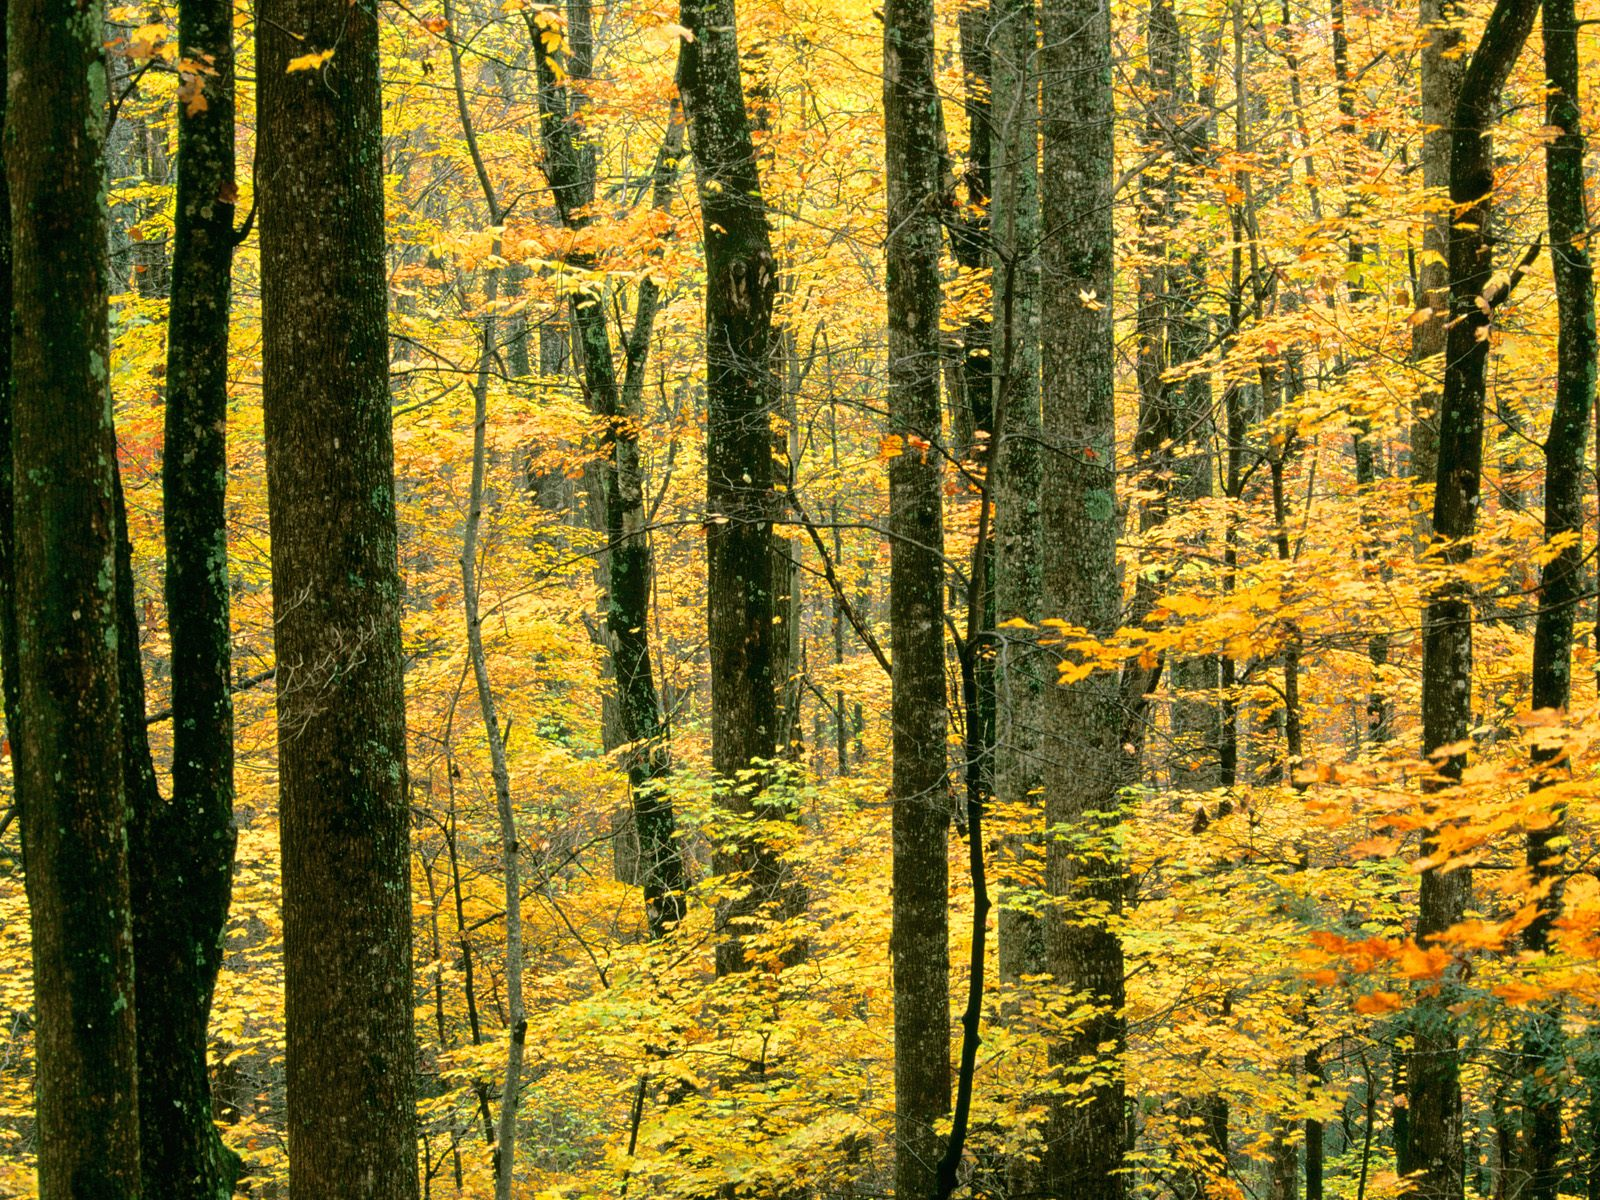 Autumn Forest, Great Smoky Mountains National Park, Tennessee